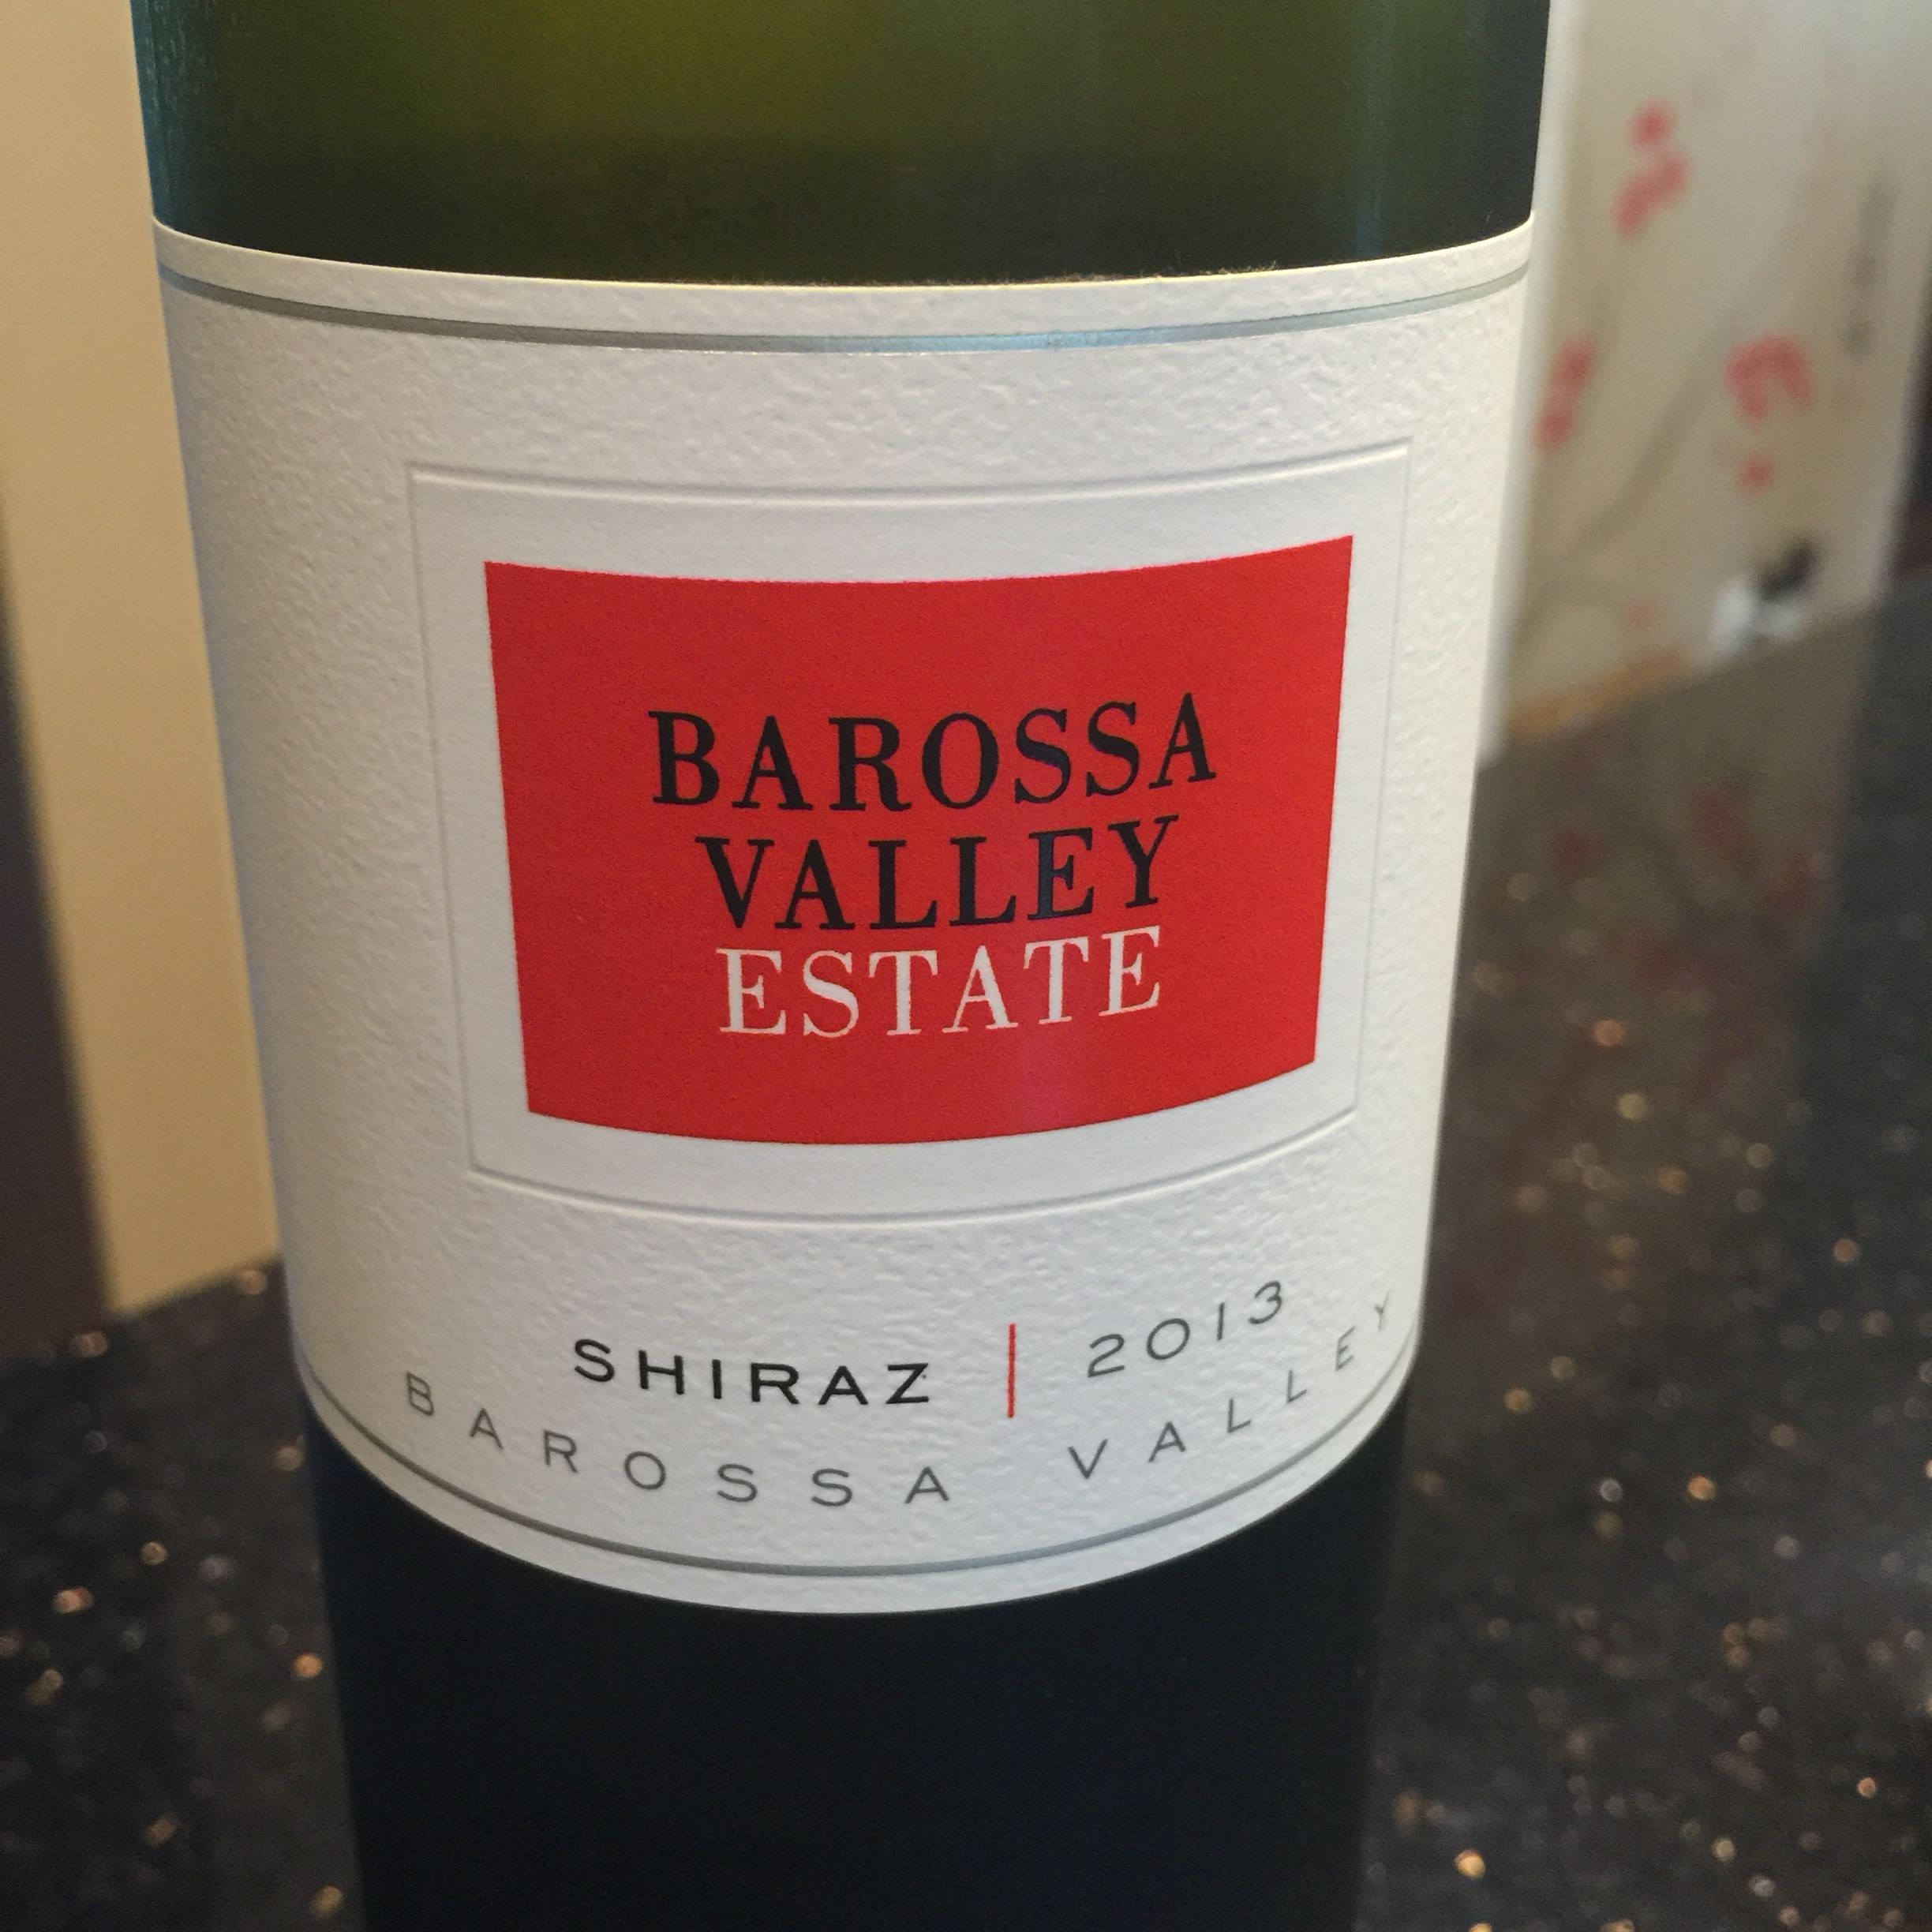 Barossa Valley Estate 2012 Shiraz Barossa Valley Australia Pair Well With Many Foods But In Particular Hearty Beef Dis Fruit Flavored Wine Bottle Beef Dishes